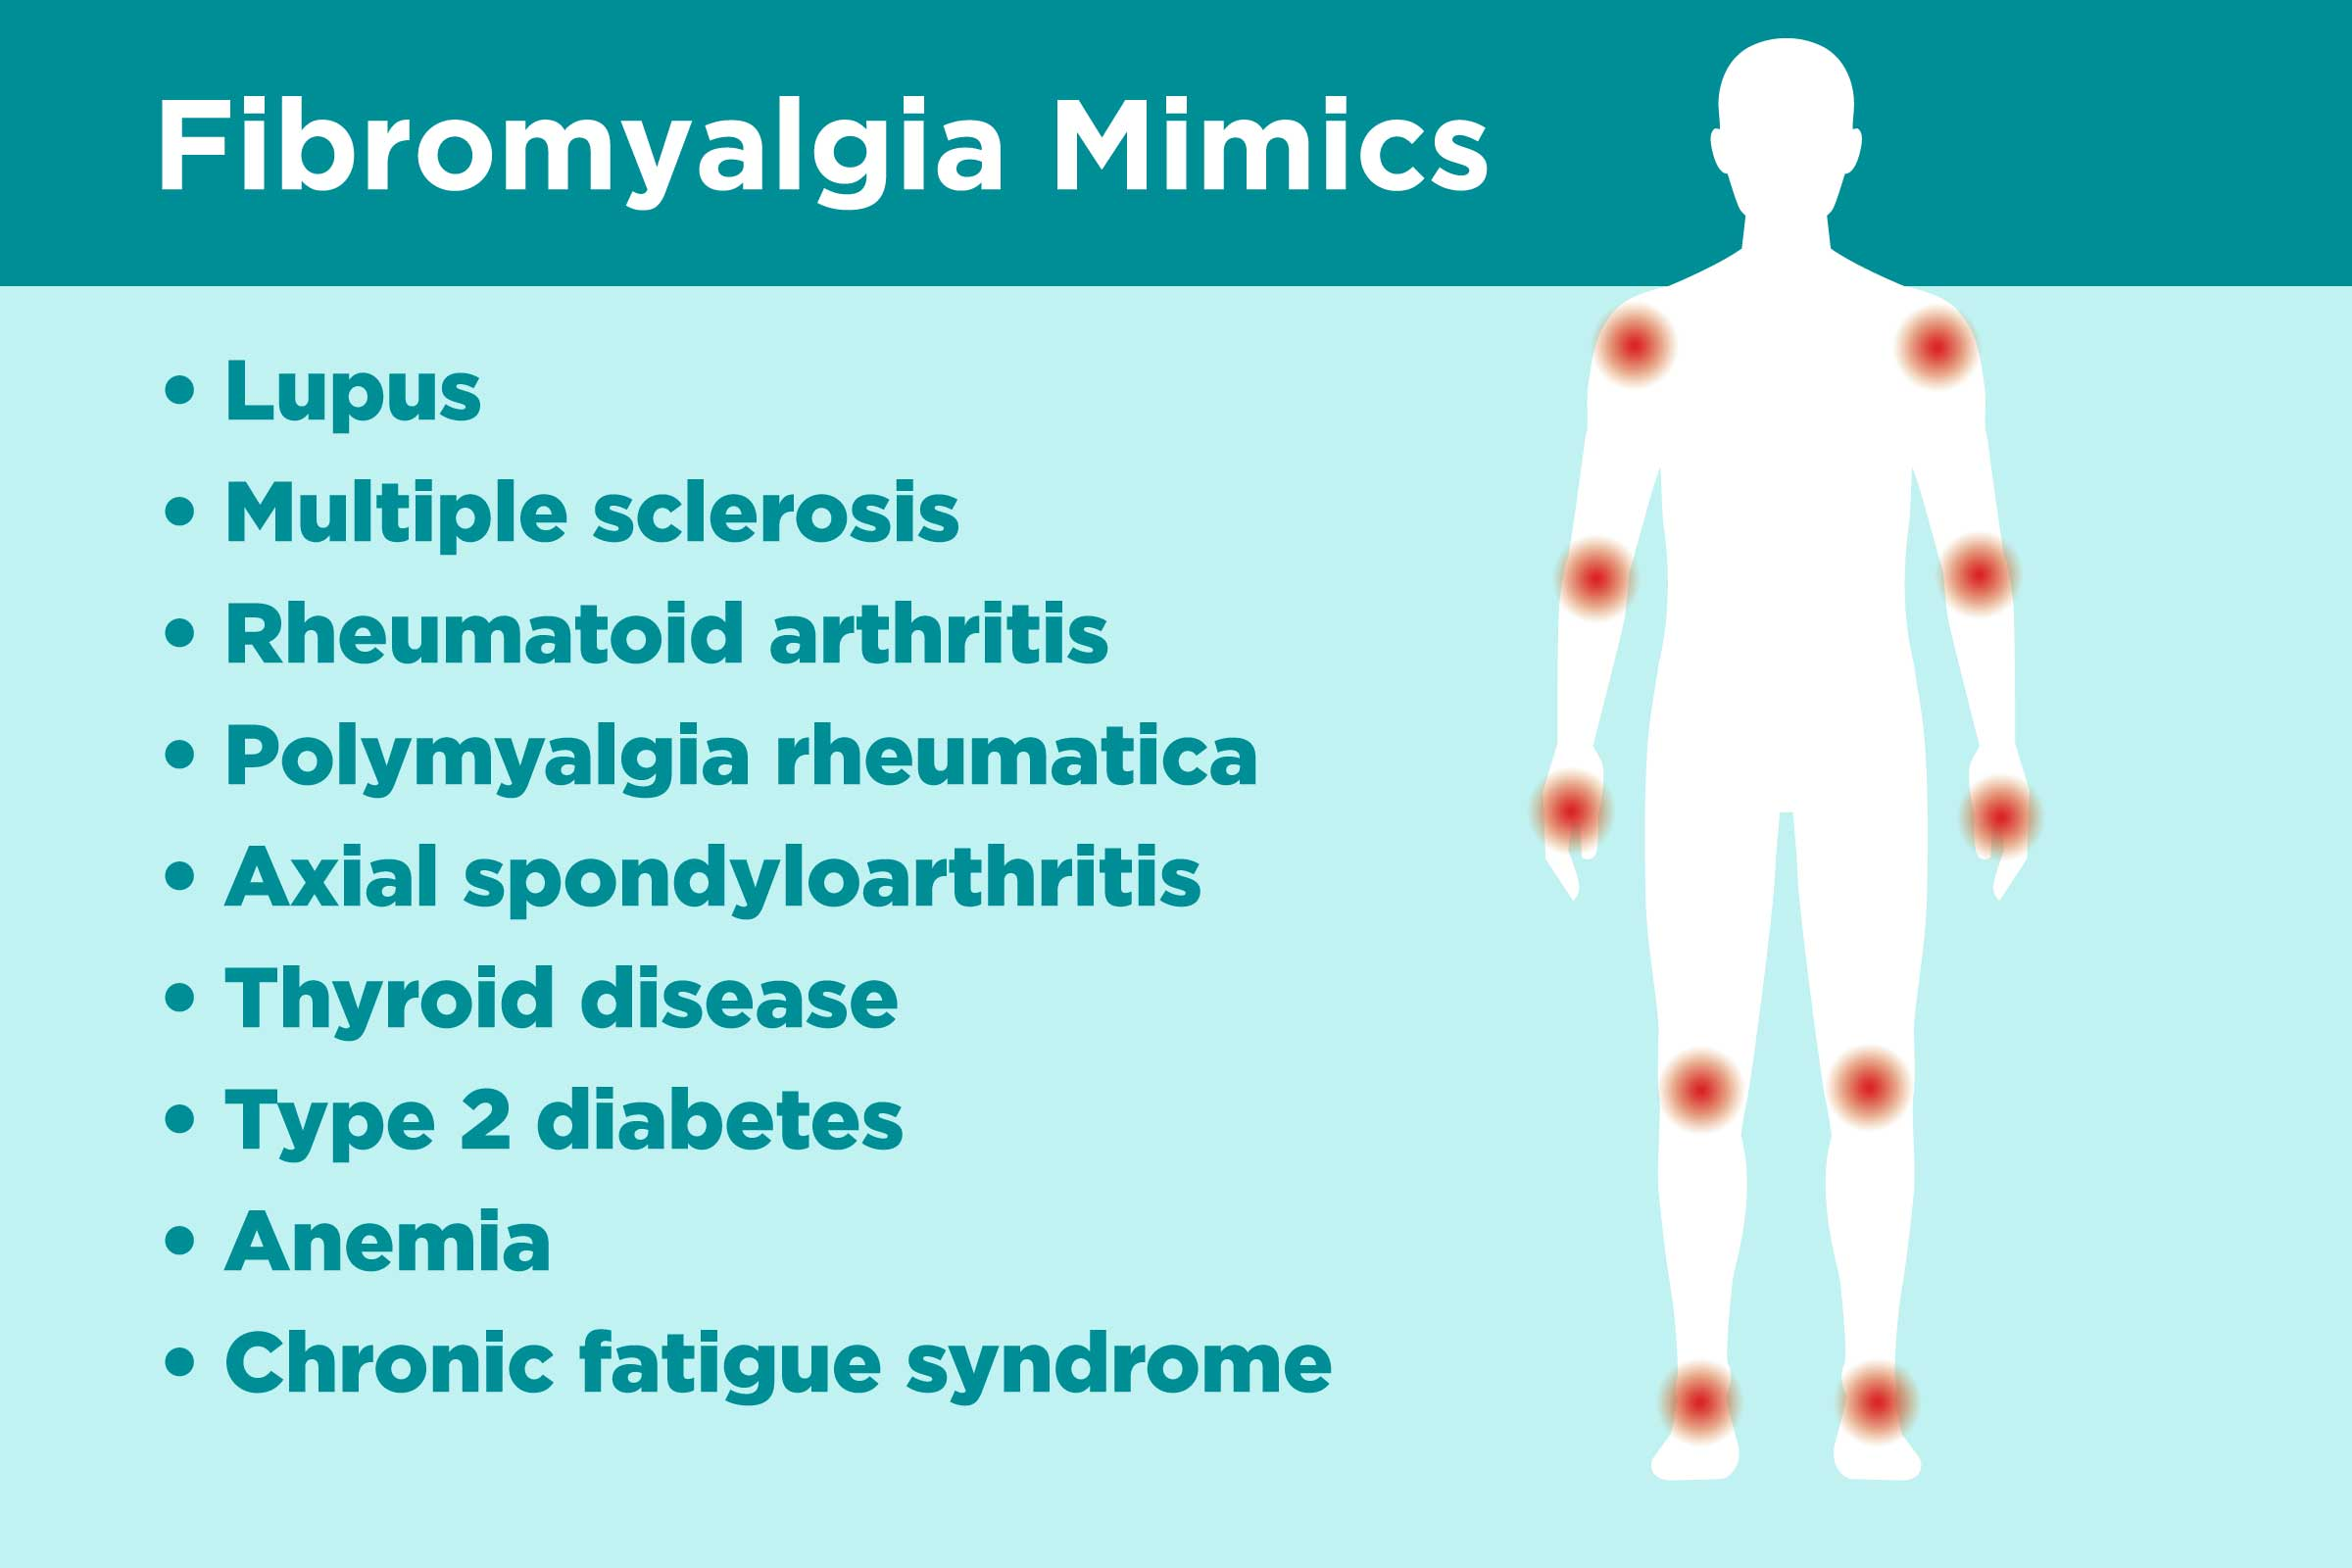 Fibromyalgia Misdiagnosis: Diseases Fibromyalgia Can Be Mistaken For